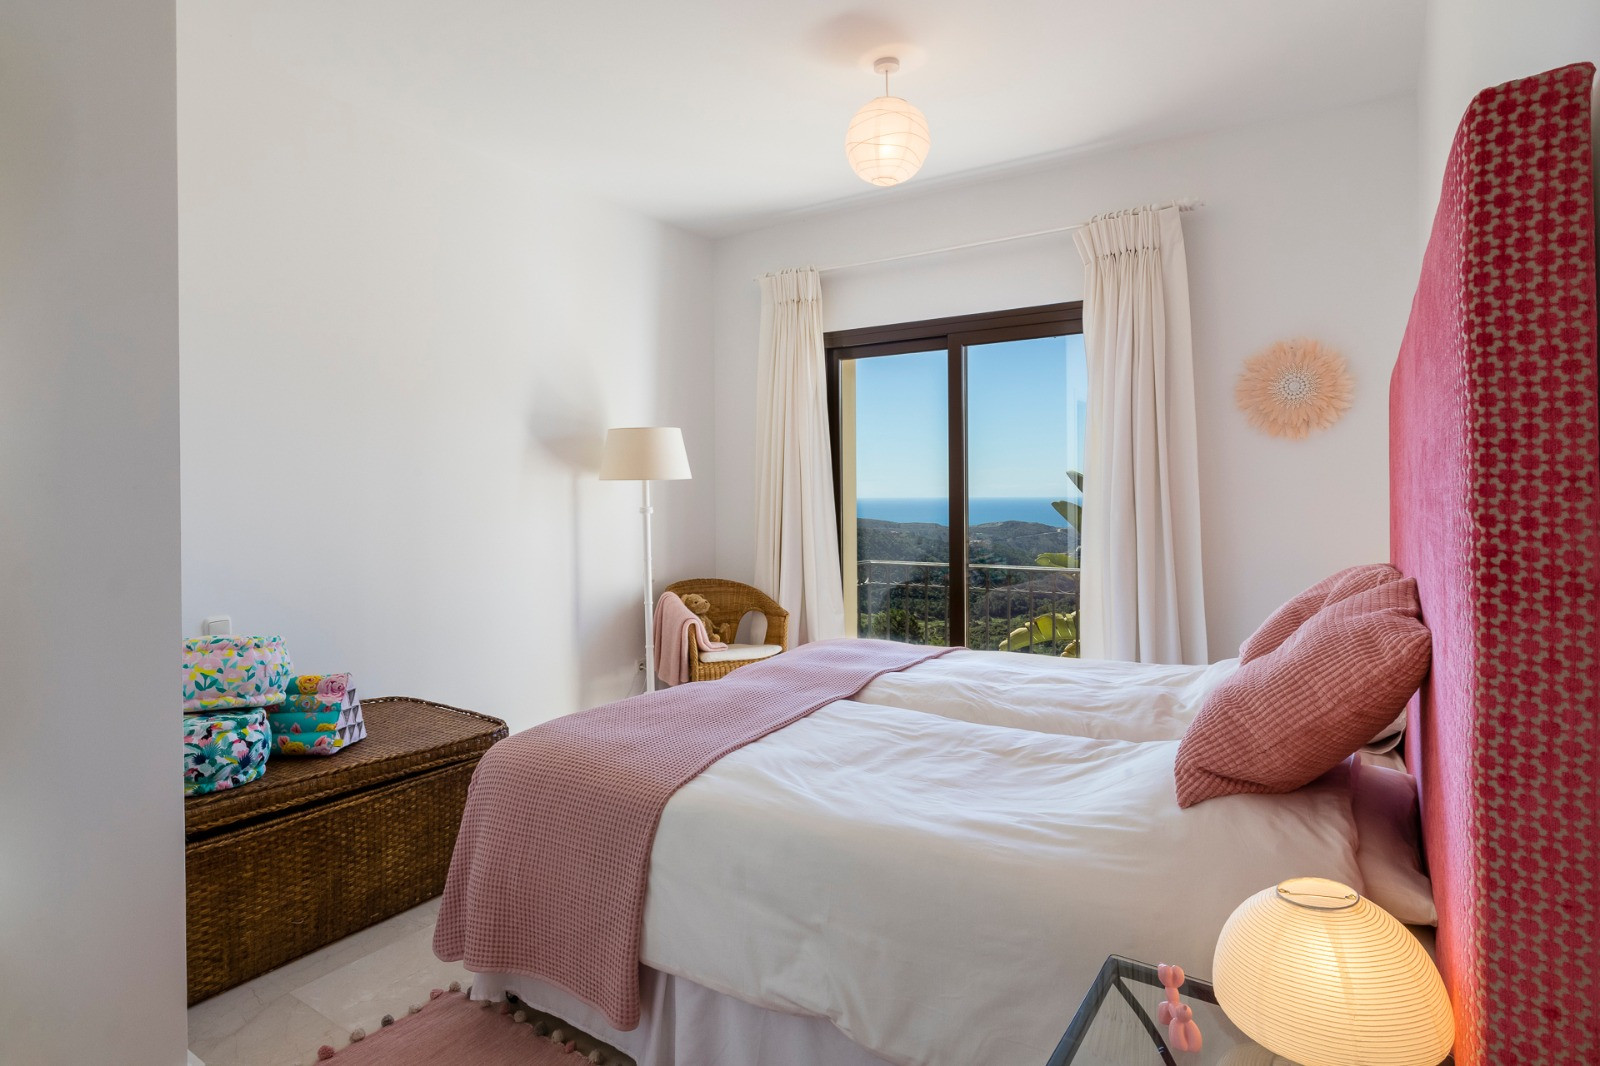 For sale and Holiday rental: Ample villa with stunning views towards the sea in Benahavis